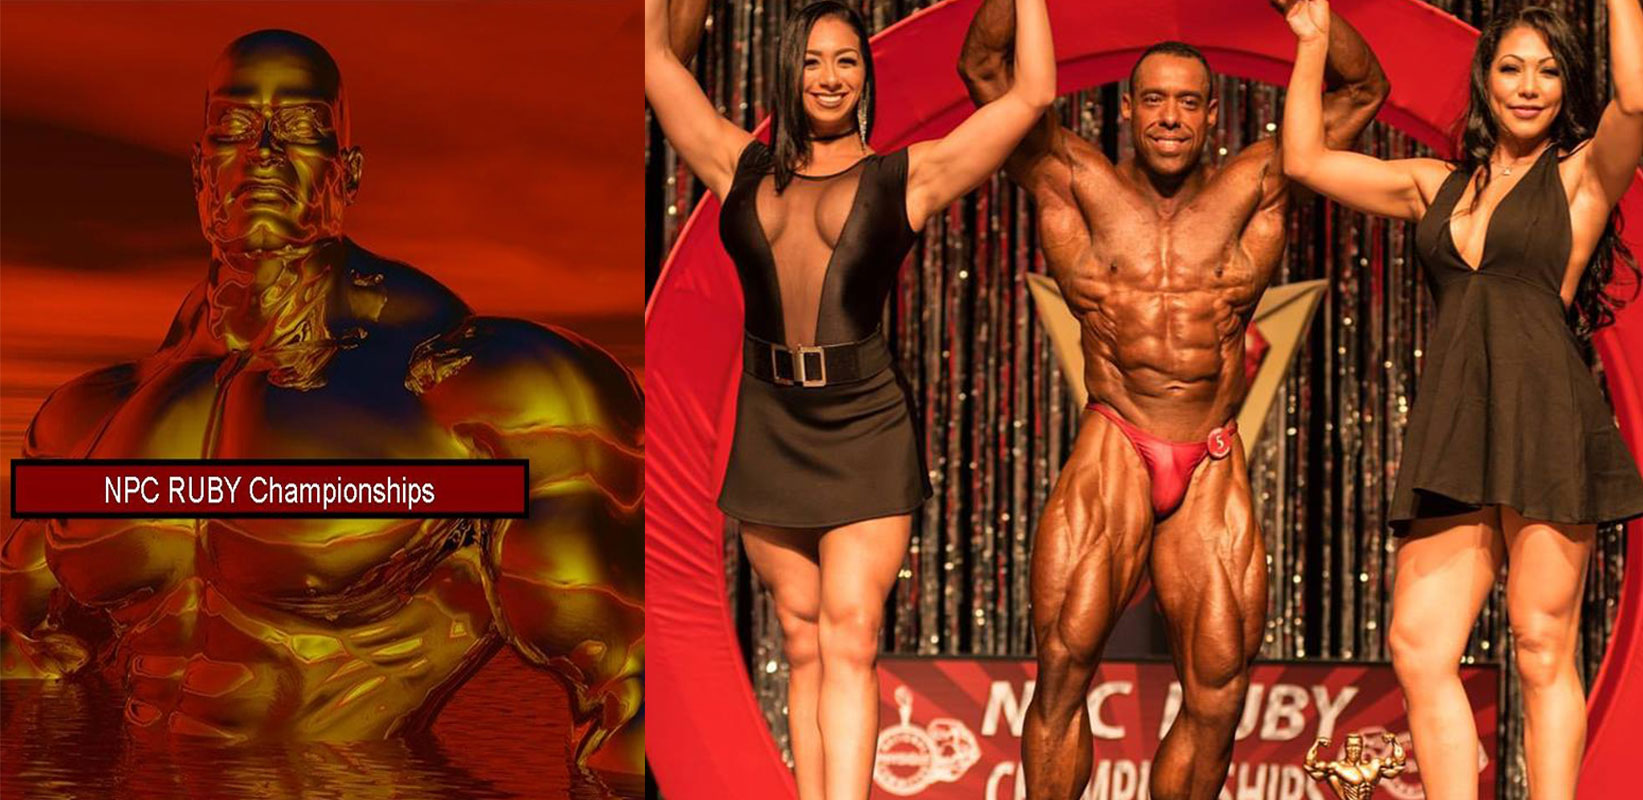 My Trainer Joe Wins at the 2016 NPC Ruby Championships